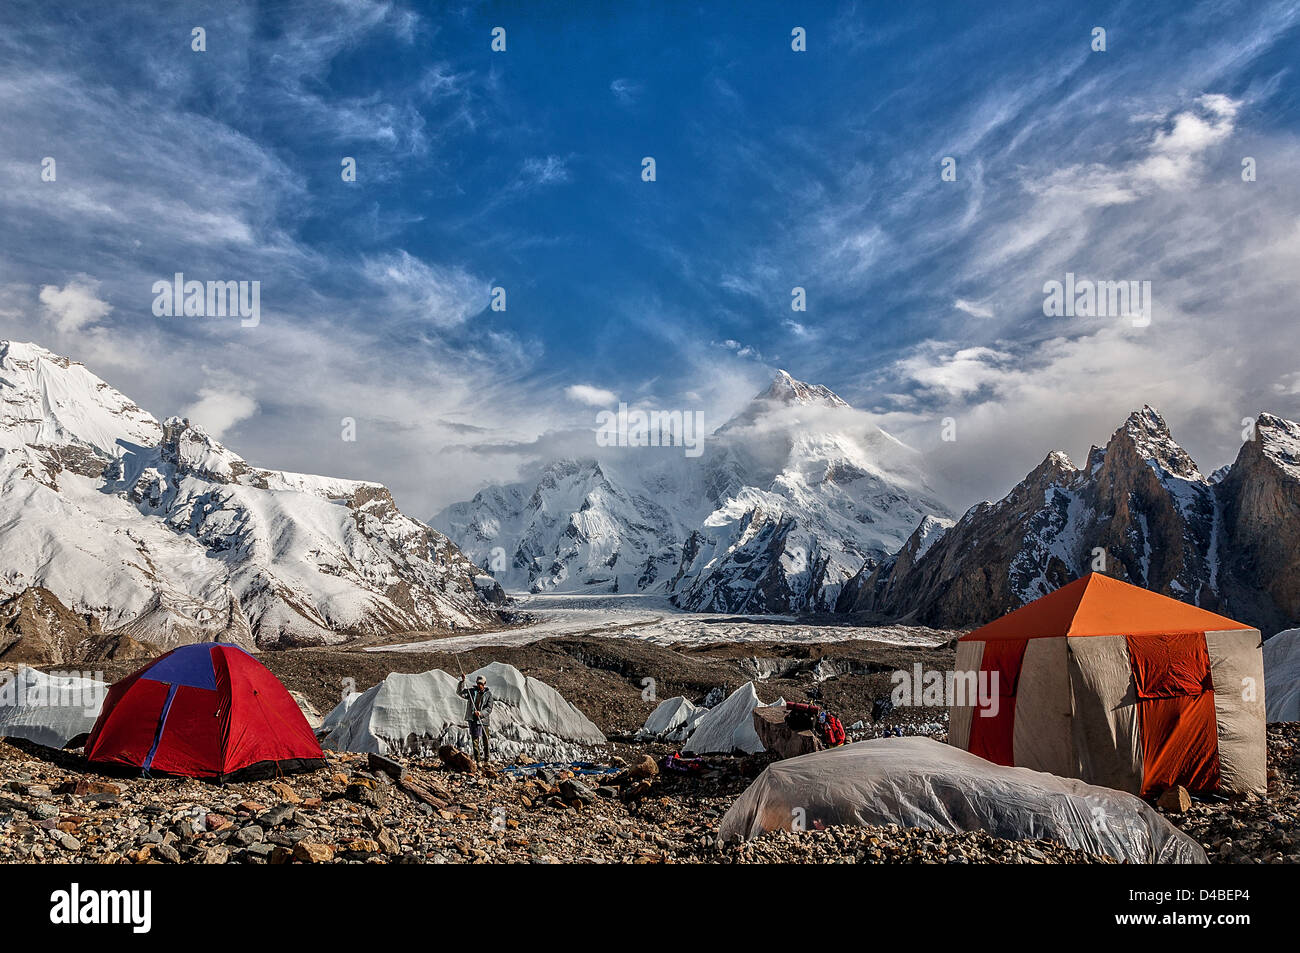 Masherbrum 7281m is located in the Gilgit Baltistan of Pakistan. - Stock Image